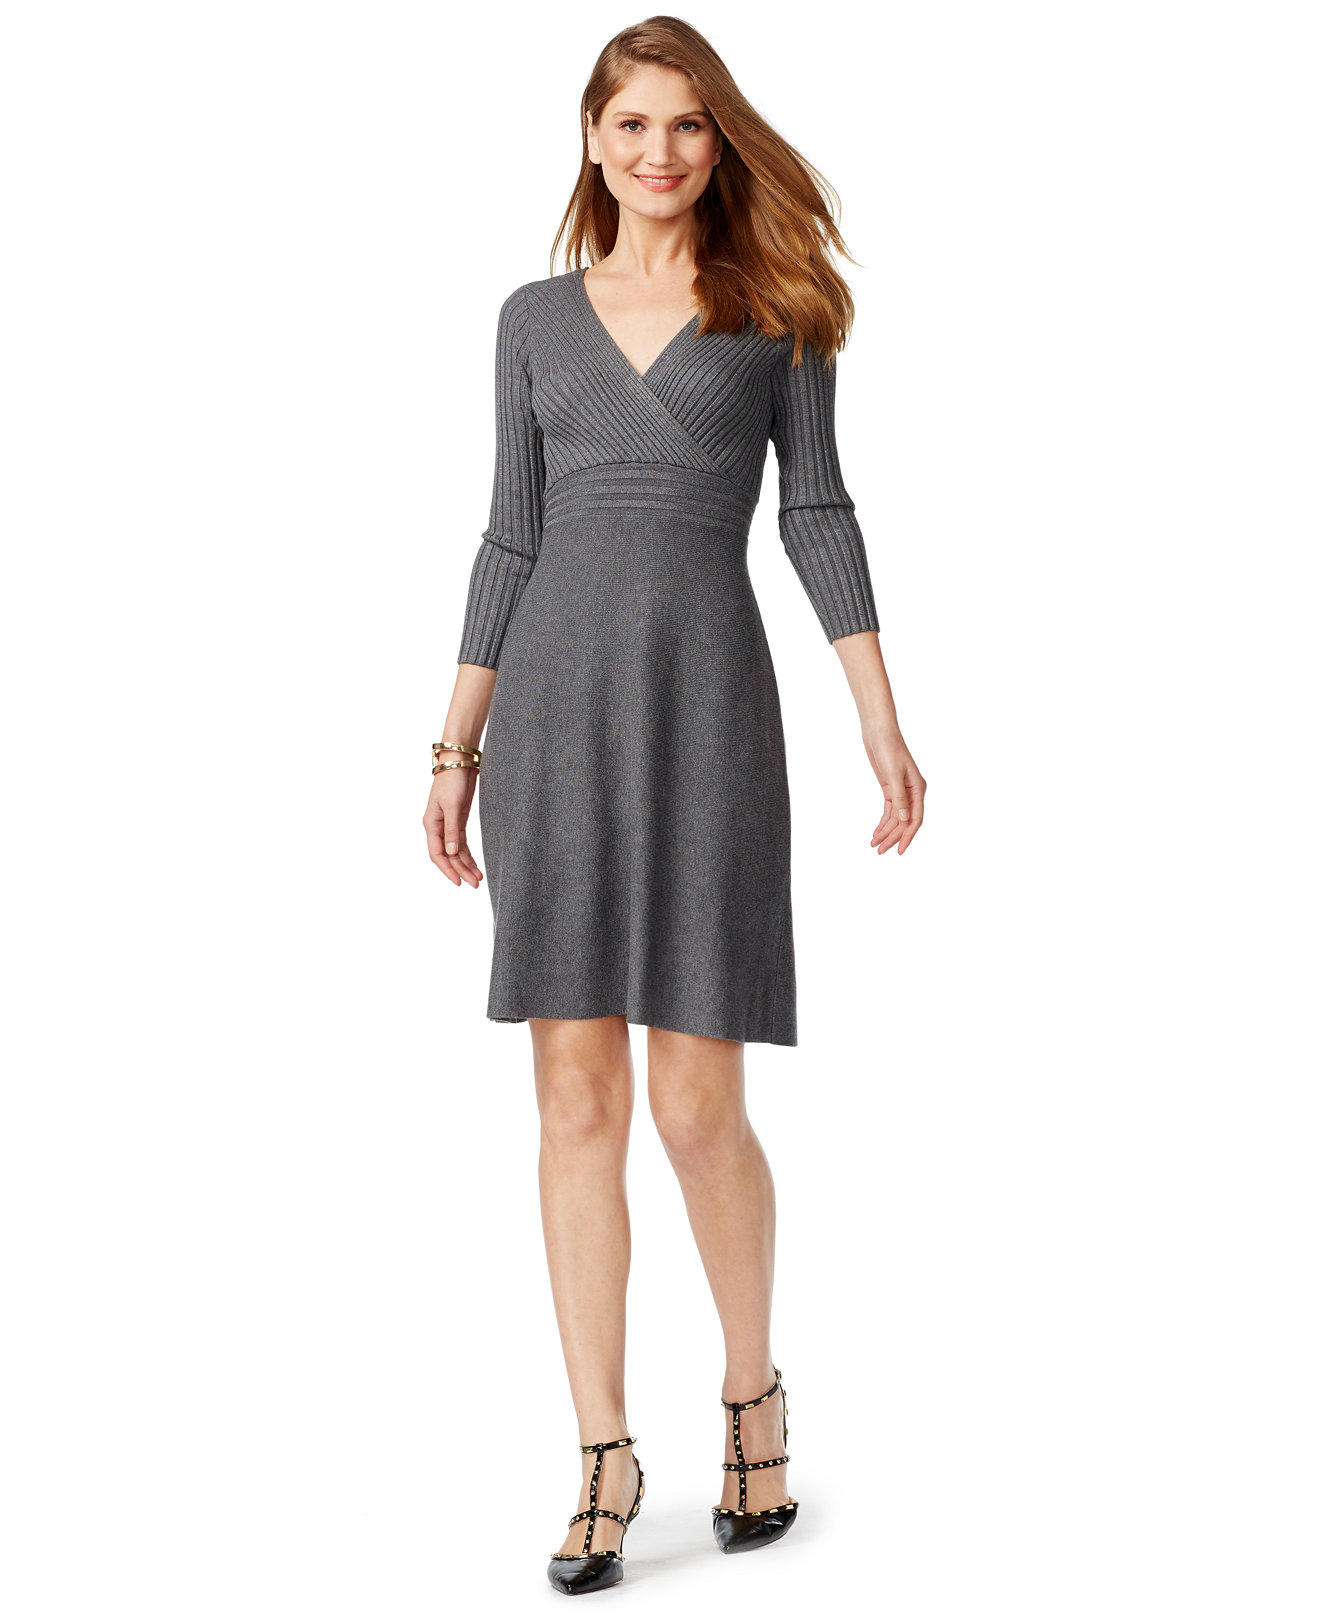 inc international concepts from macys clothes